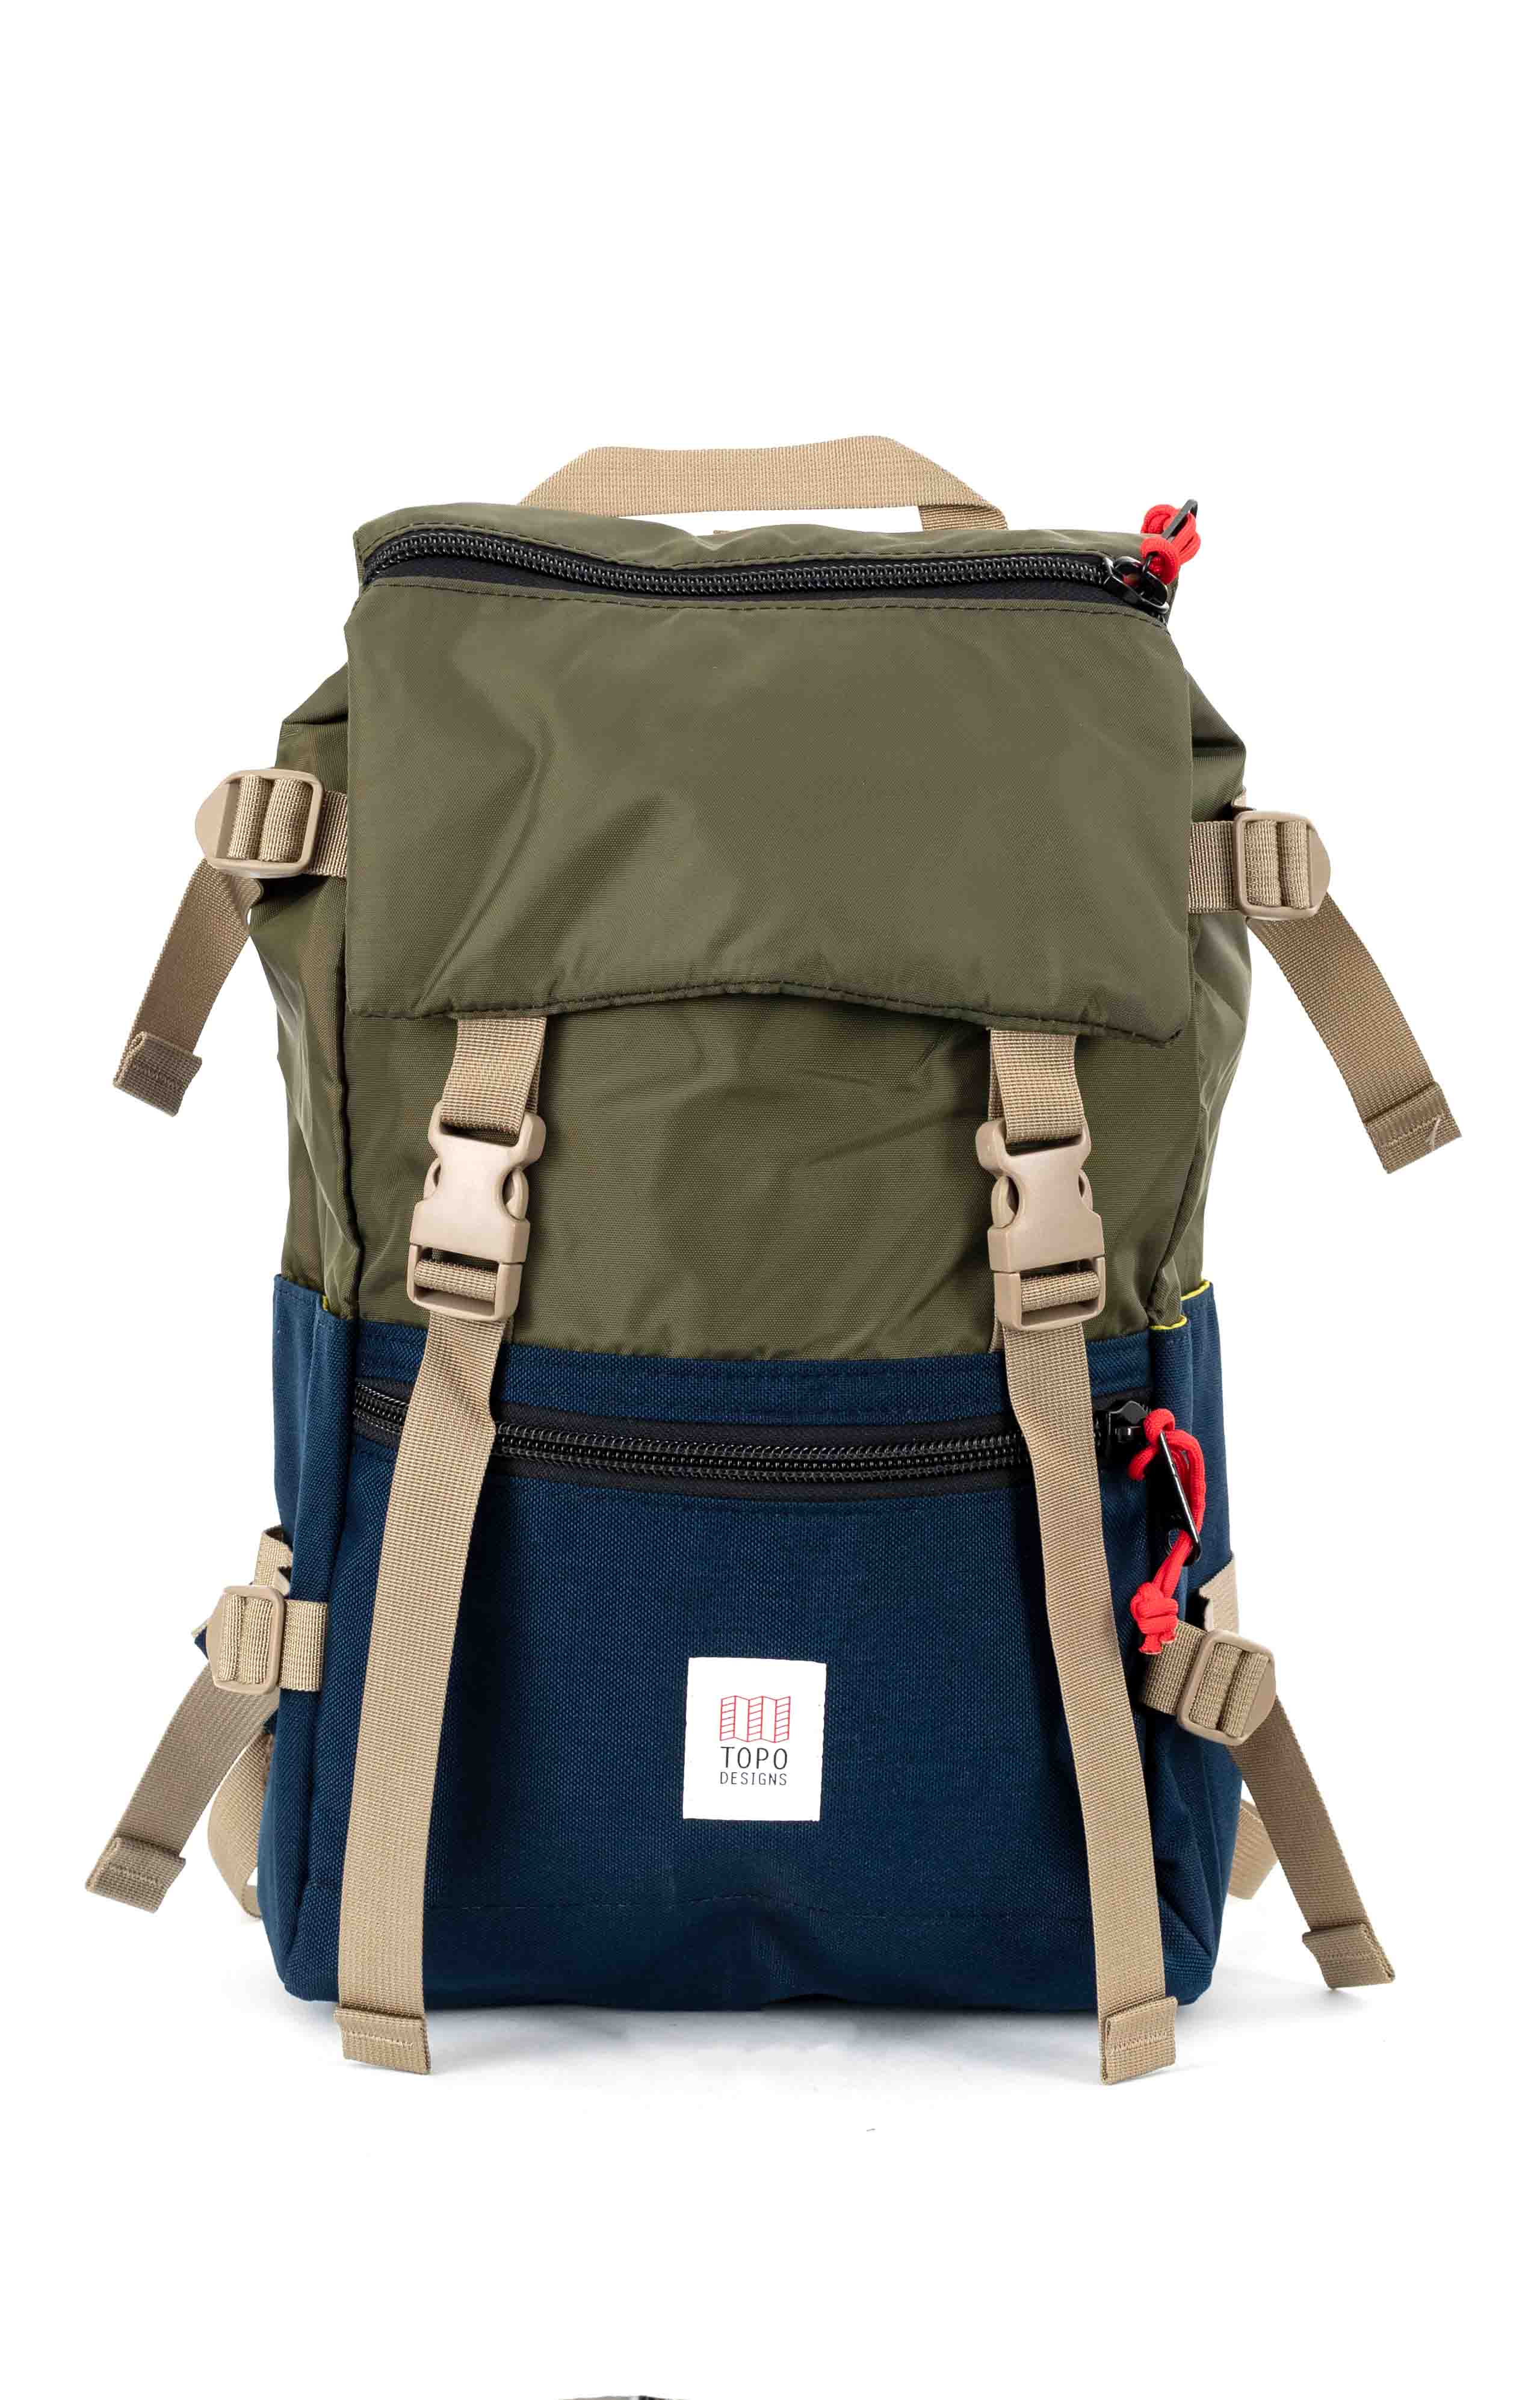 Rover Pack - Olive/Navy